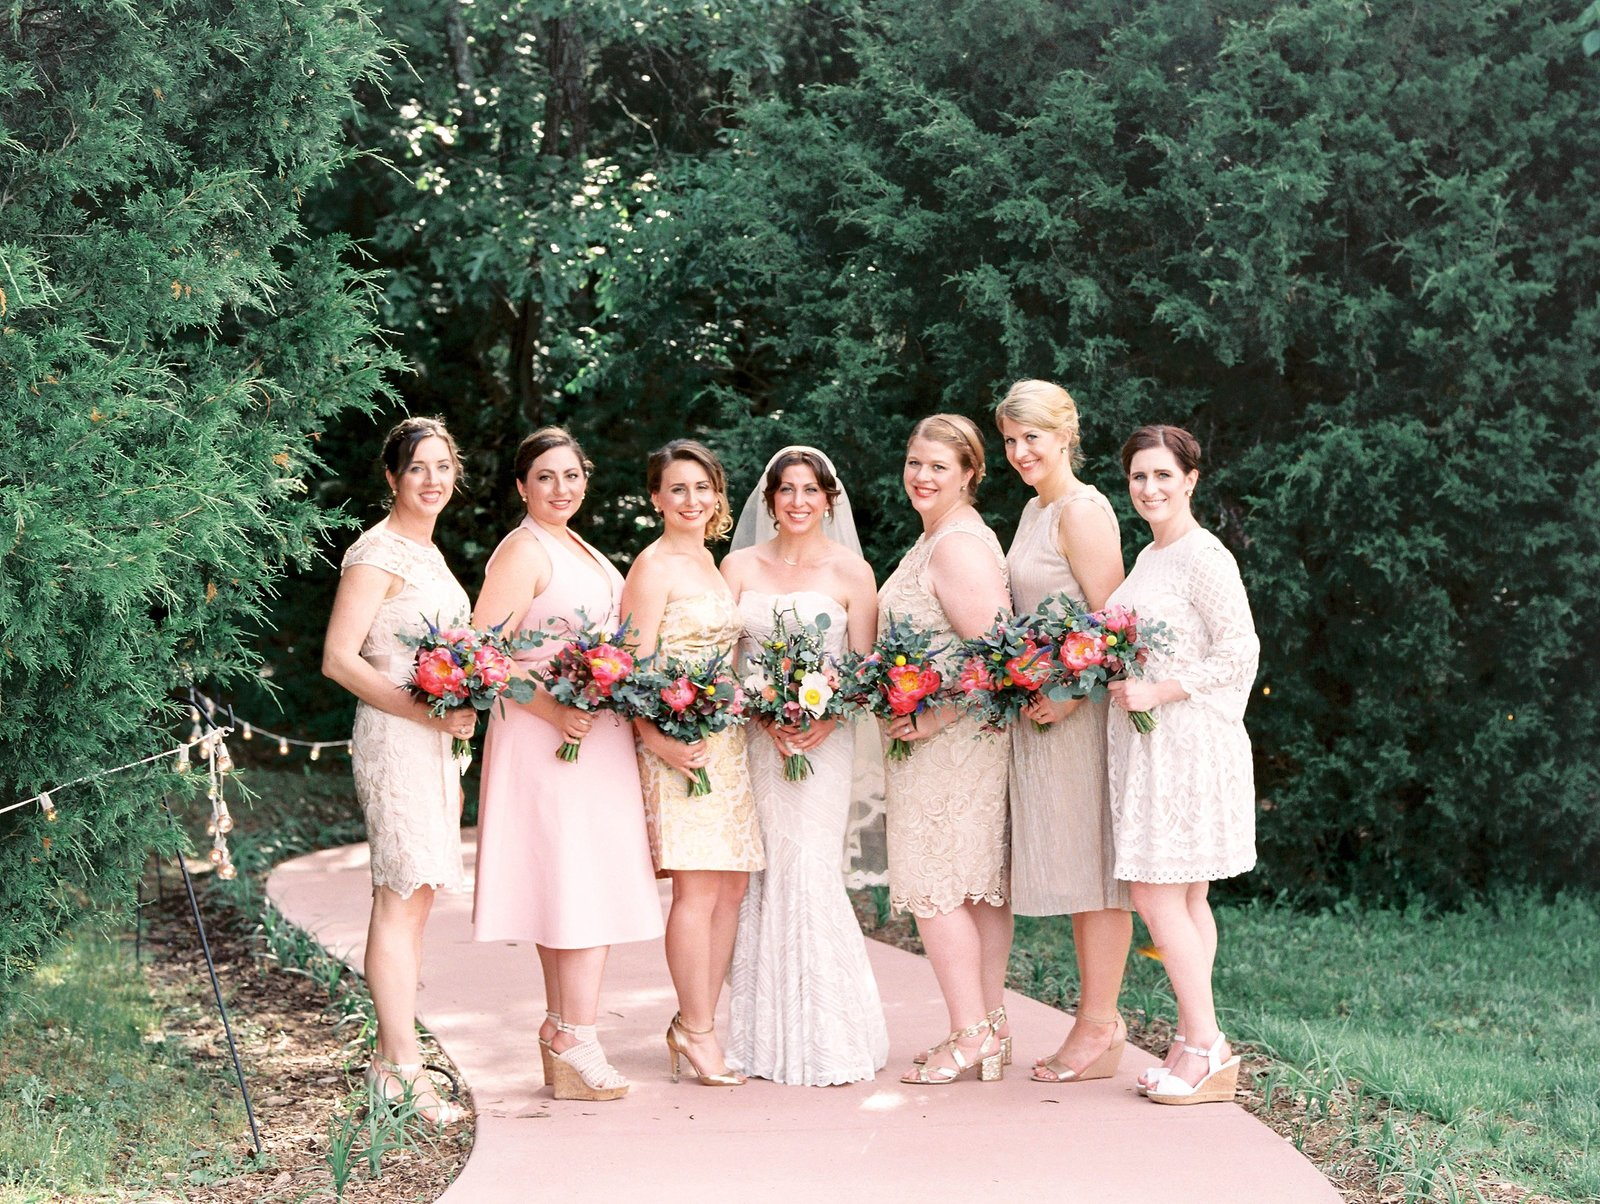 st.louis.wedding.photographer_0234